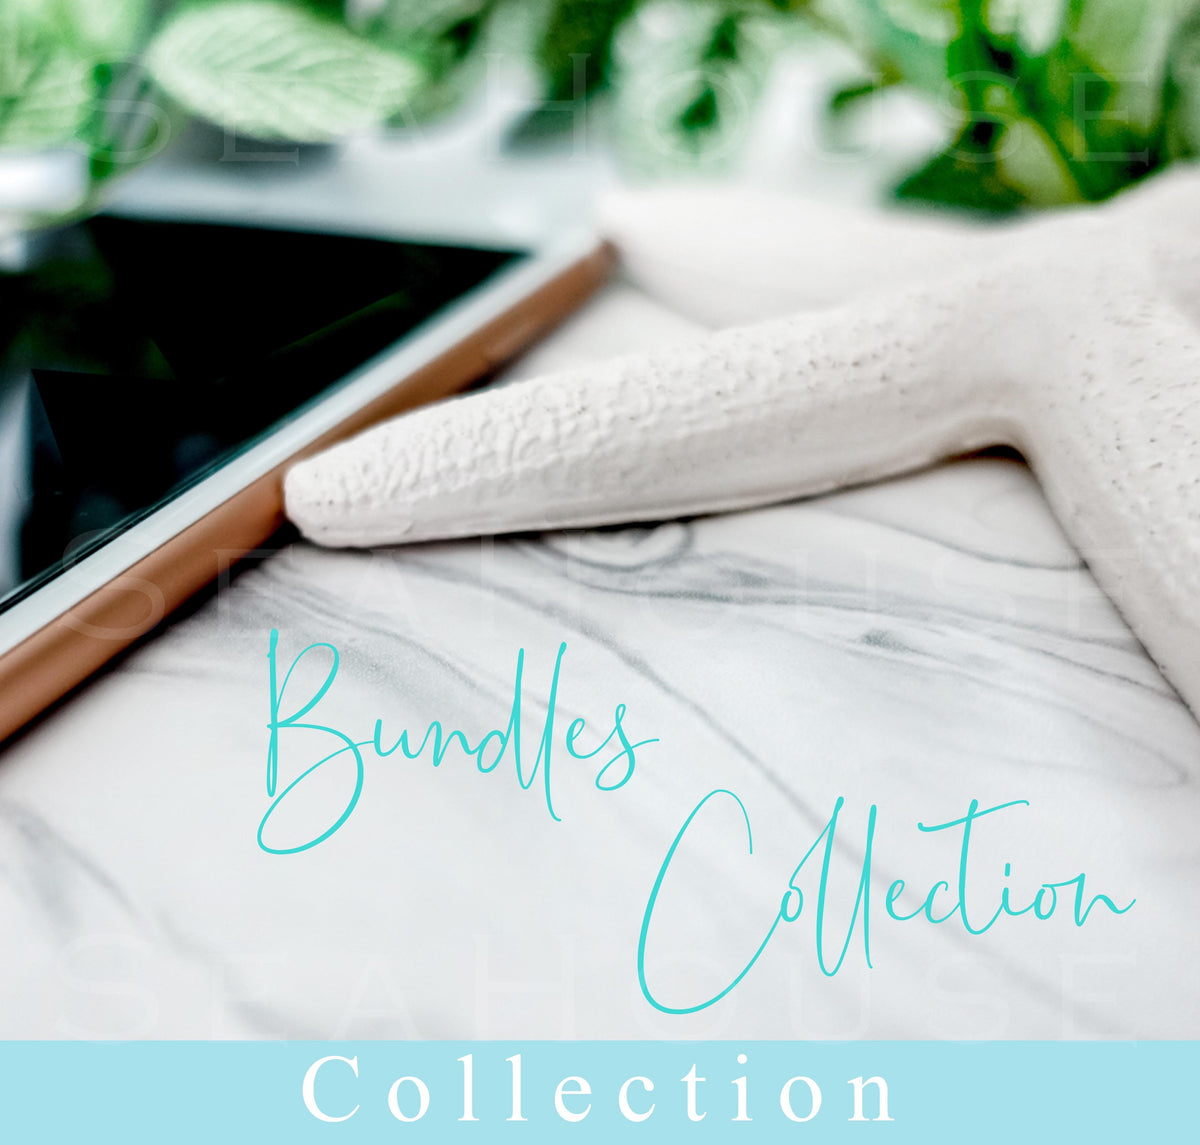 All Bundles Collection Image